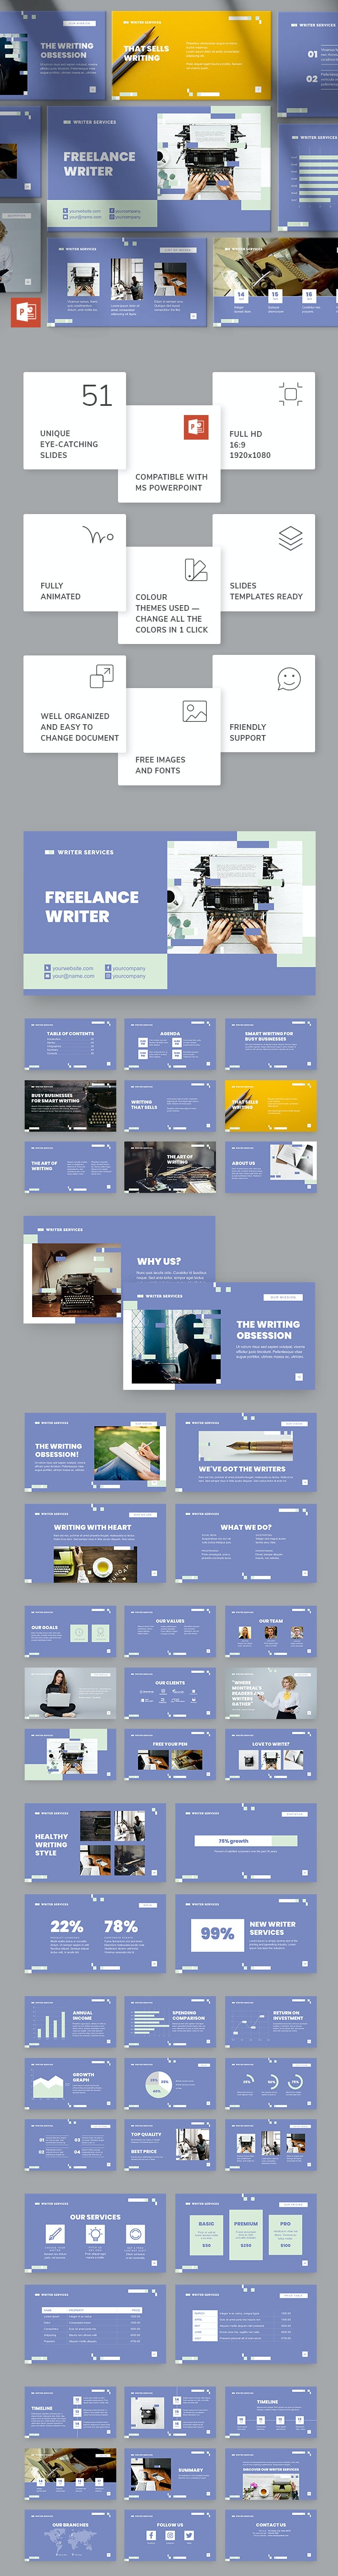 Freelance Writer PowerPoint Presentation Template - Miscellaneous PowerPoint Templates